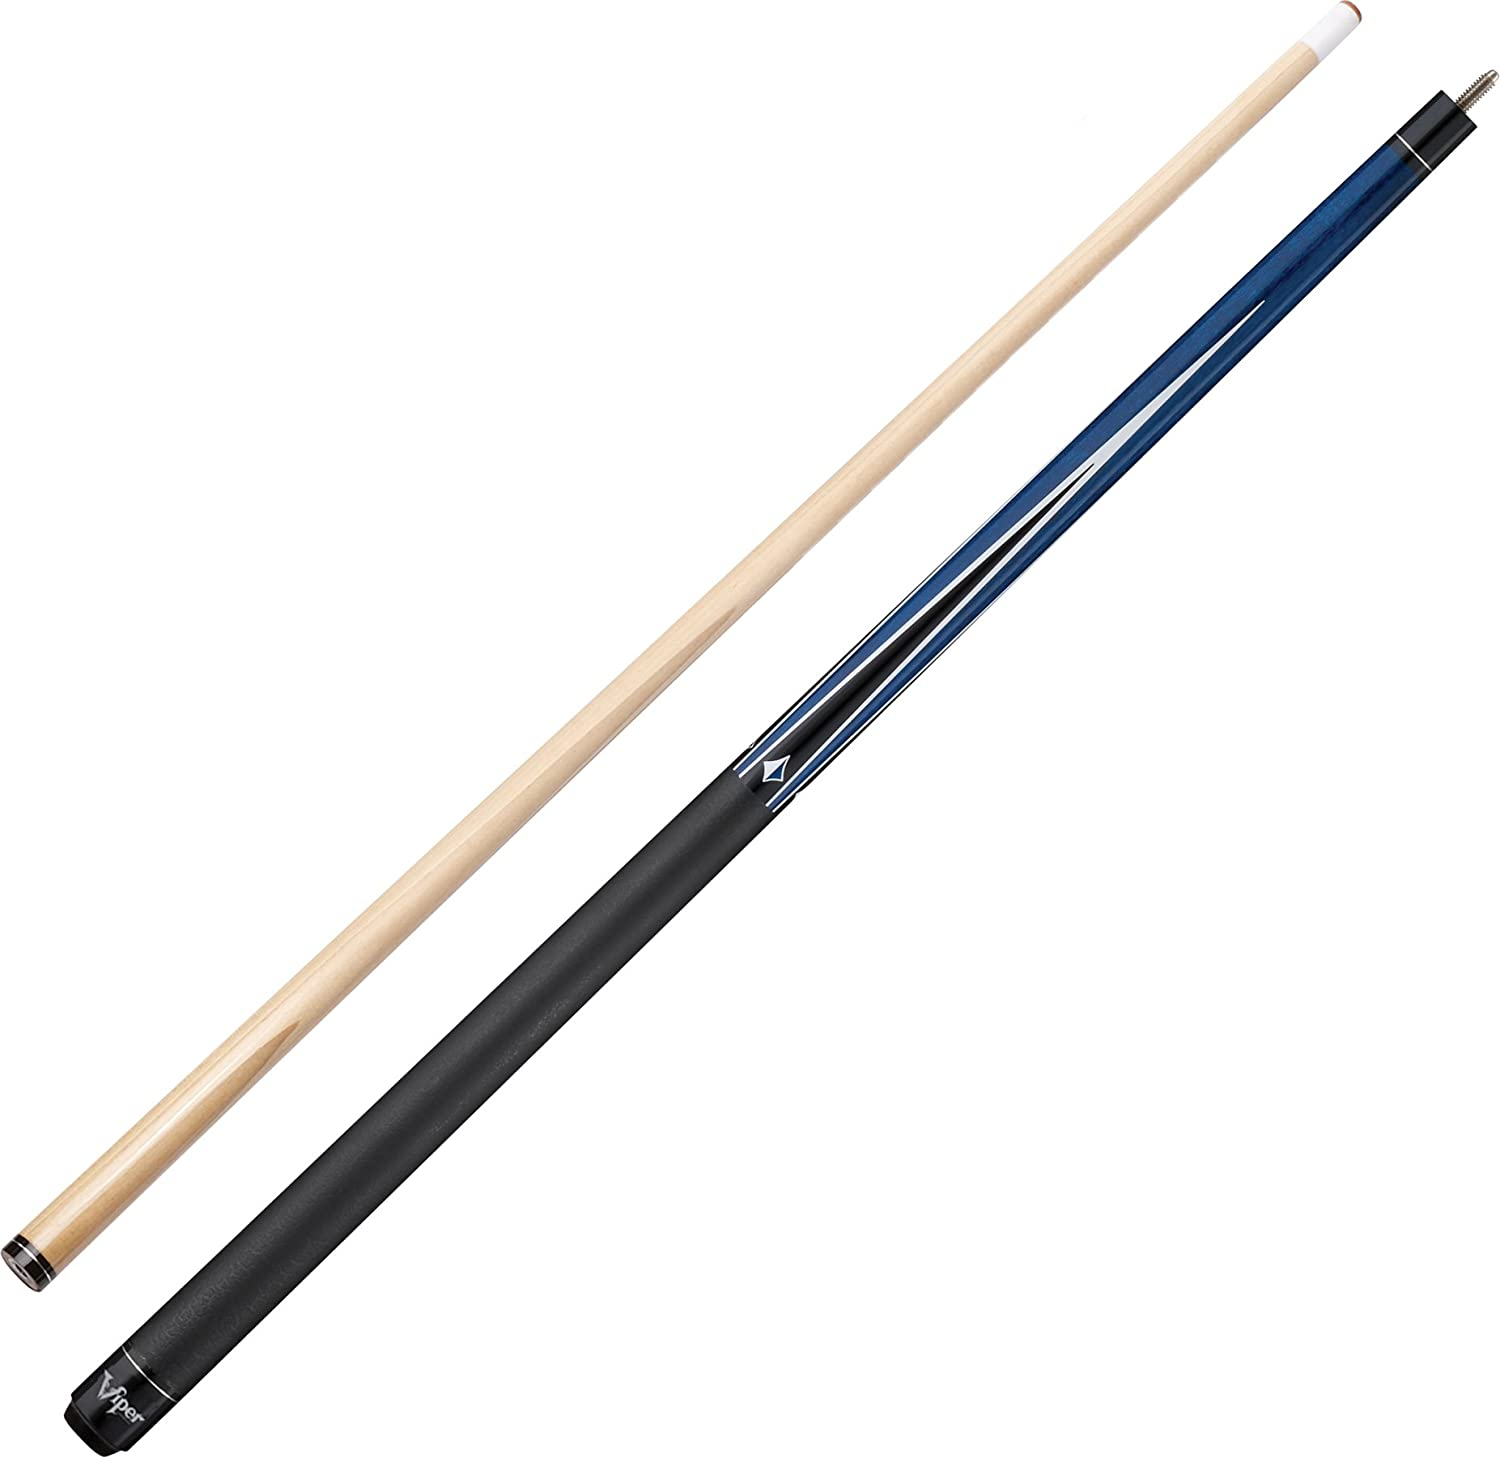 Viper Diamond 58 2-Piece Billiard/Pool Cue 50-0910-18-P